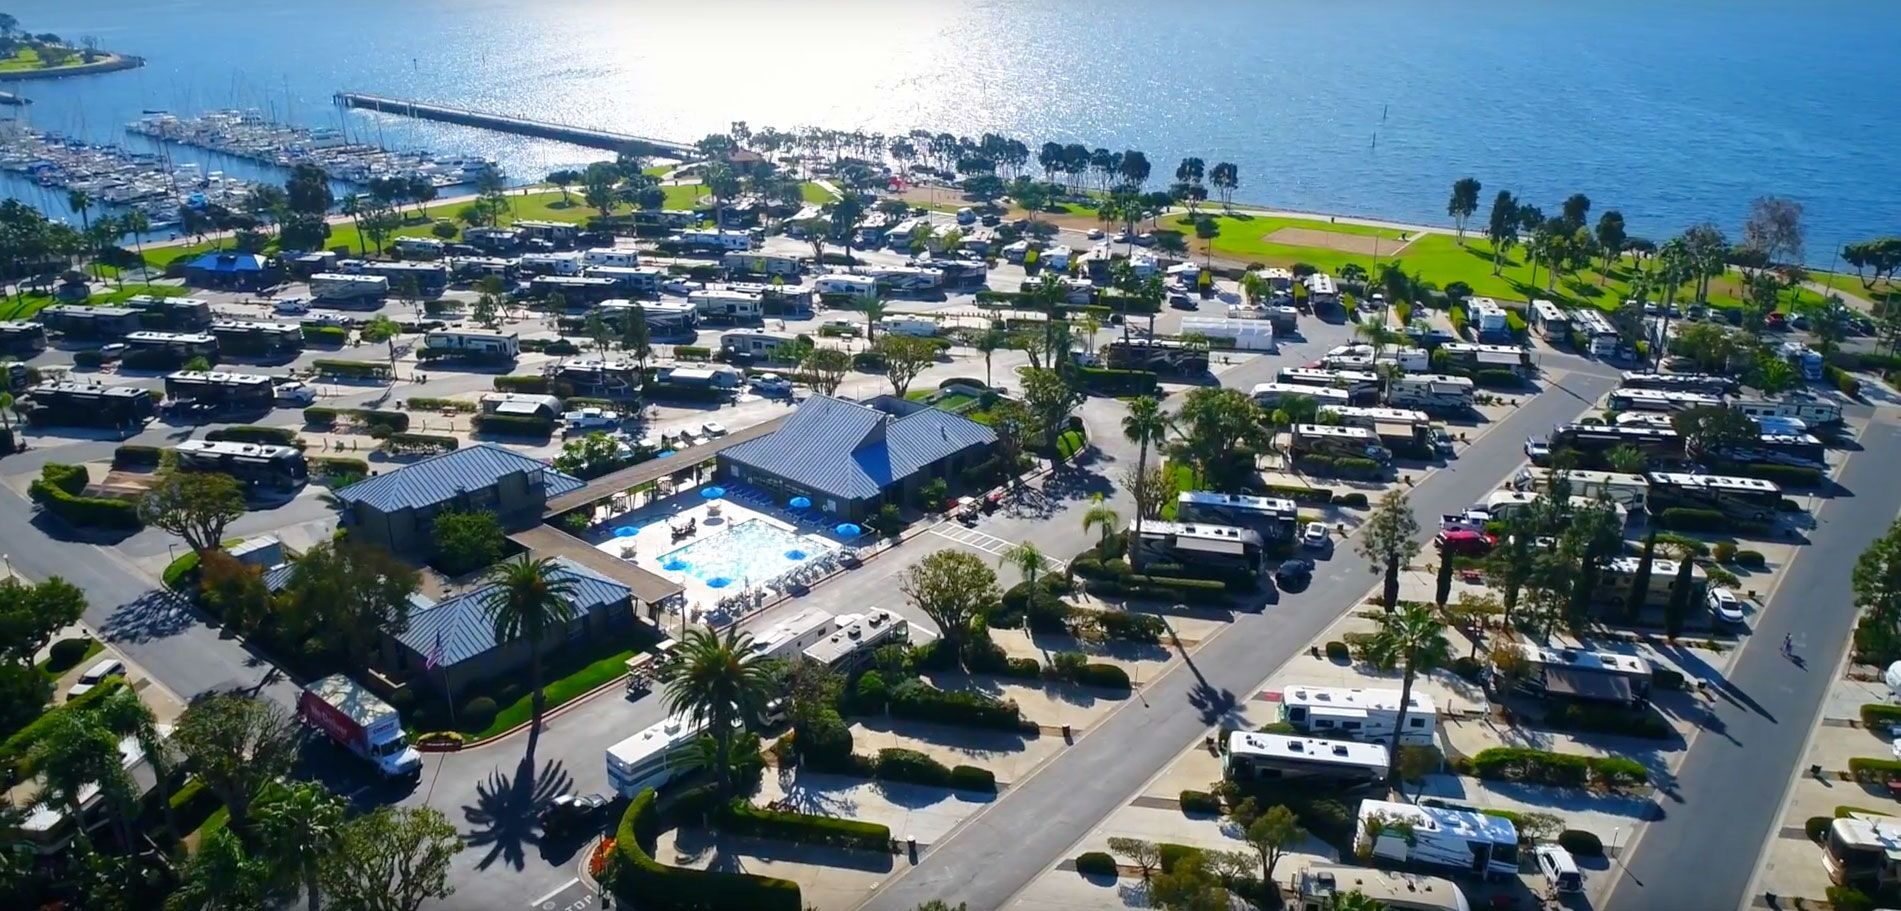 Experience Luxury Rv Camping At Chula Vista Rv Resort Situated Right On The San Diego Bay Book Today And In 2020 Chula Vista Rv Resort Best Rv Parks Luxury Rv Resorts